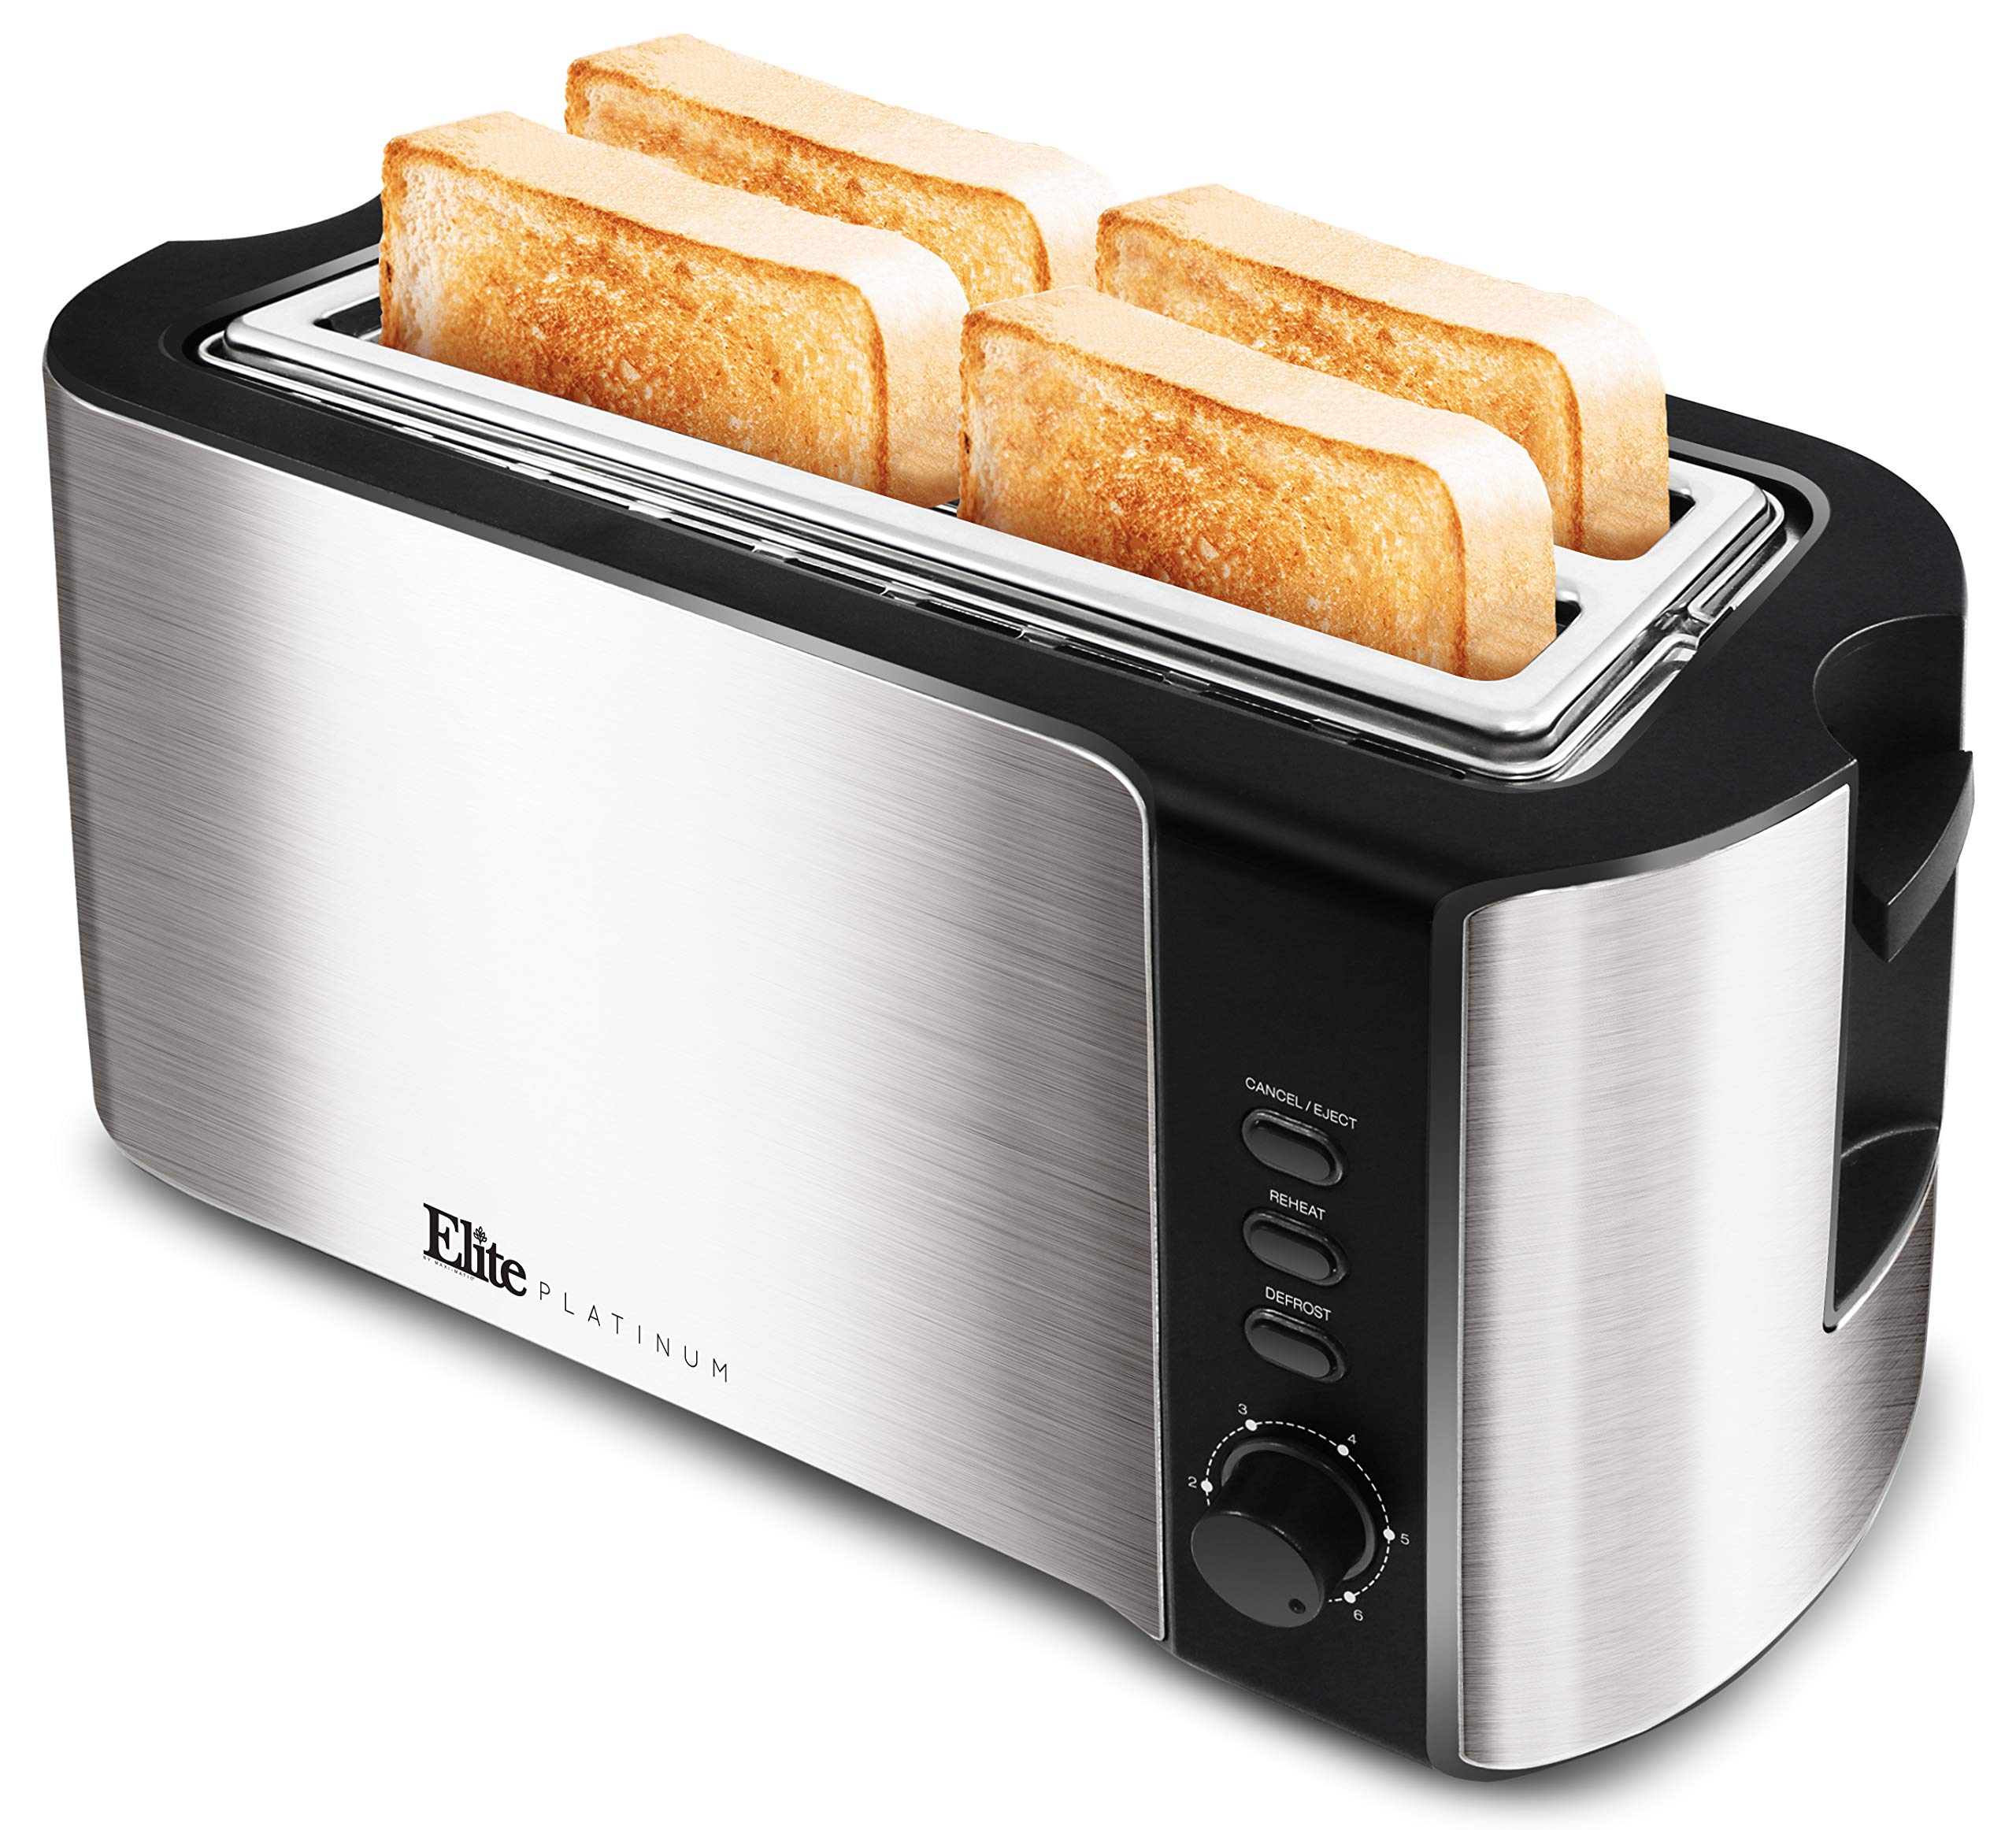 """Maxi-Matic ECT-3100 Cool Touch Long Extra Wide 1.25"""" Slots for Bagels Toaster, 4 Slice, Stainless Steel & Black"""